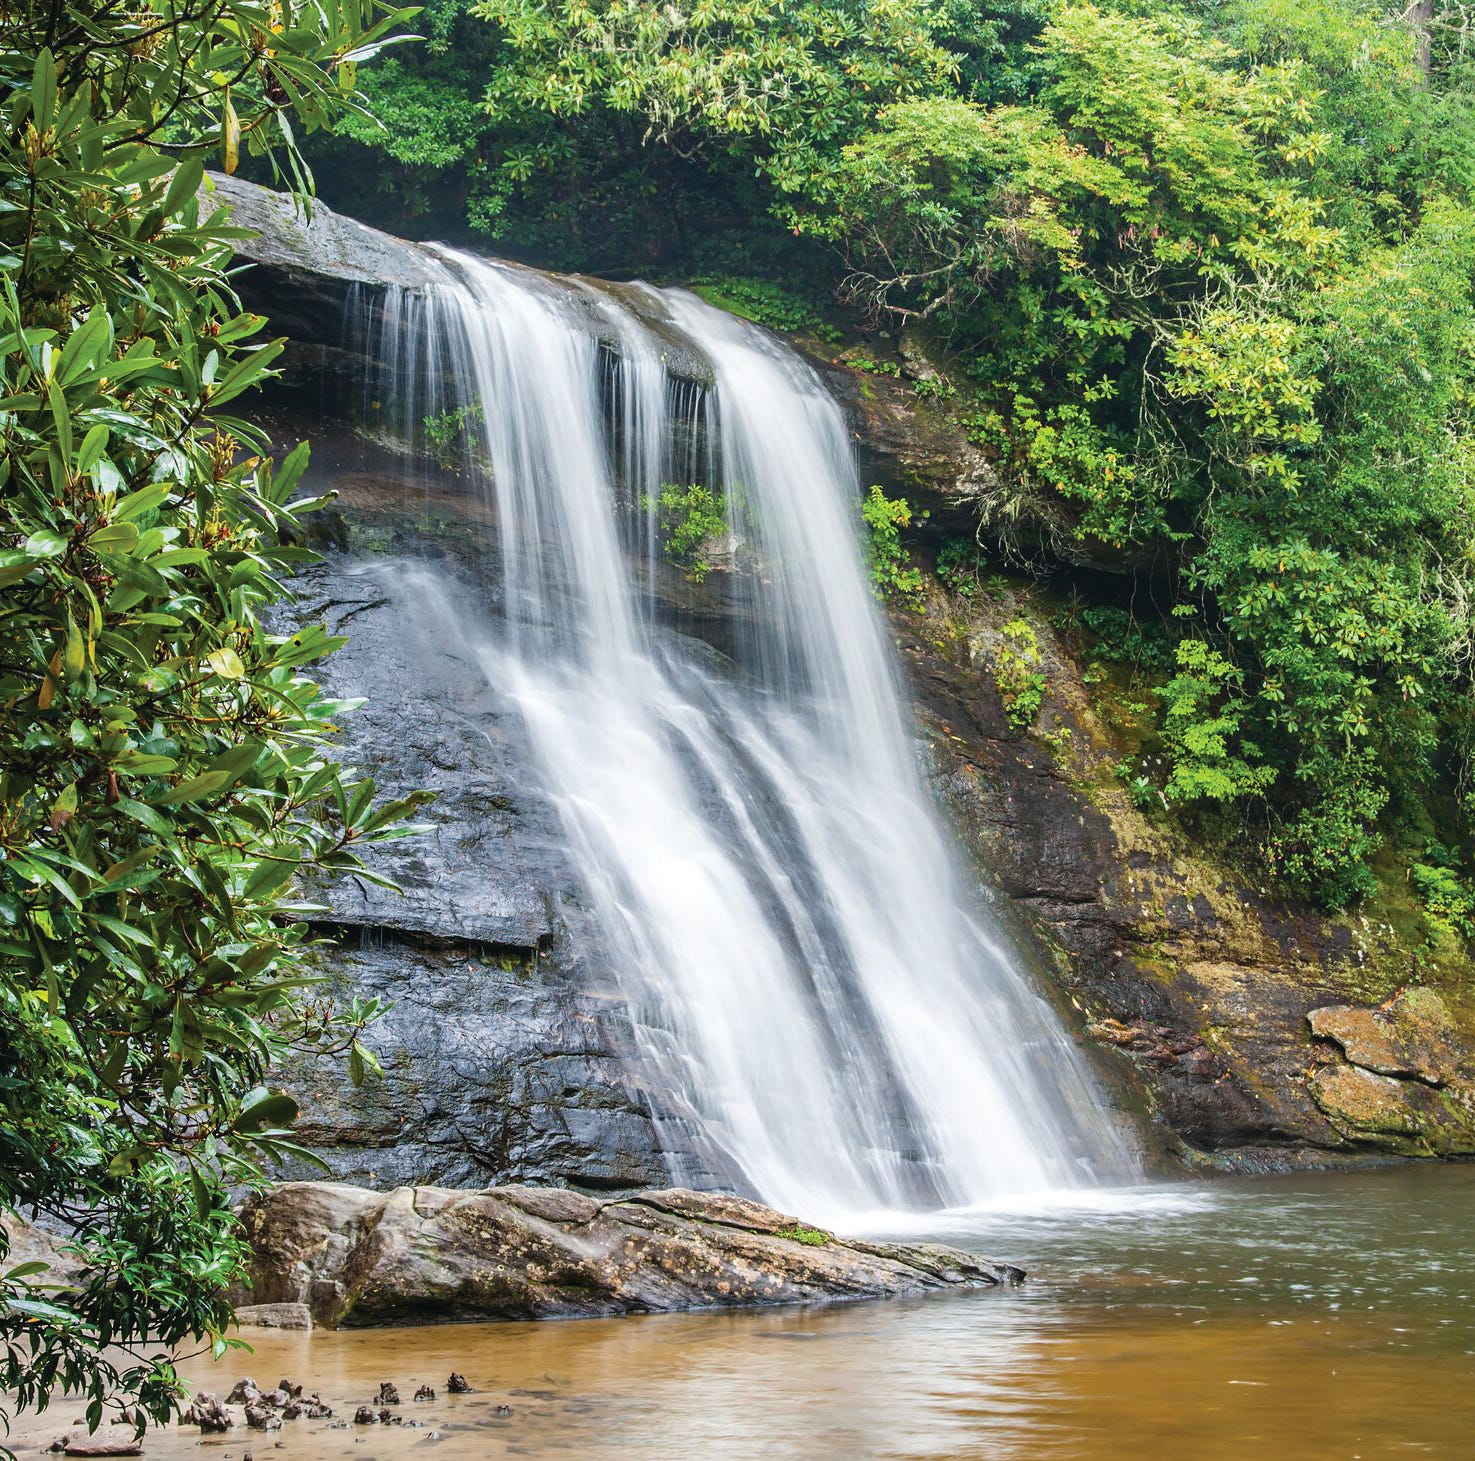 Fests and falls: North Carolina mountain towns in Jackson County are destinations for spring